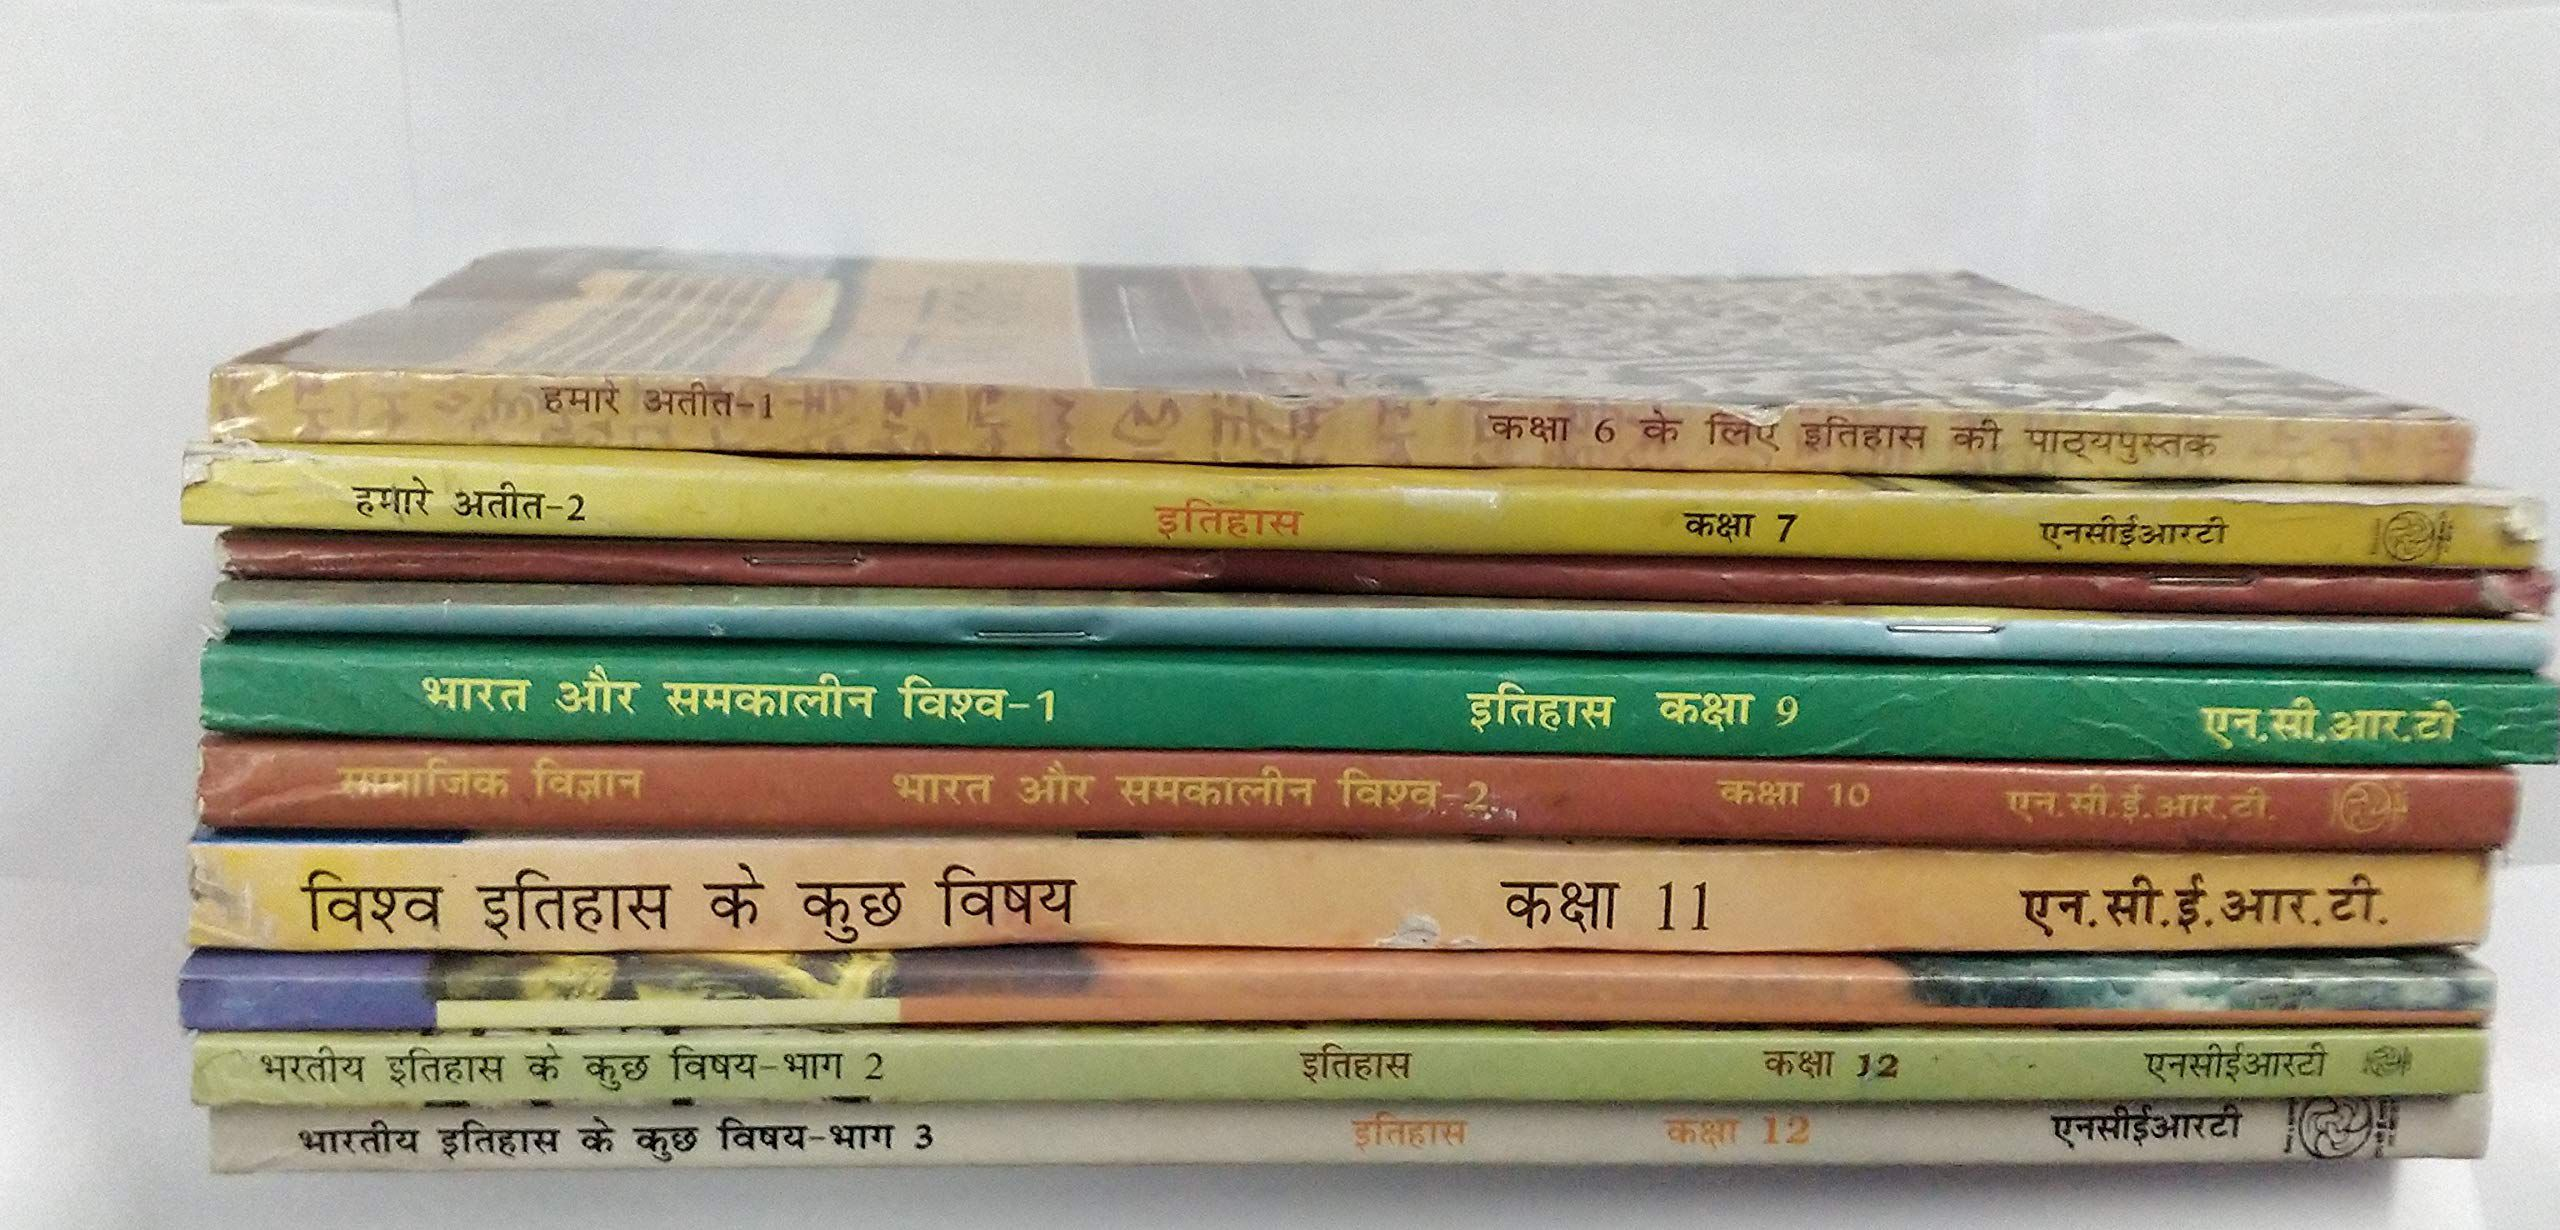 NCERT Iitihas Books Set of Class-6 TO 12 (HINDI MEDIUM) for UPSC  Prelims/Main / IAS / Civil Services / IFS / IES / ISS / CISF / CDS / SCRA /  IFS / NDA